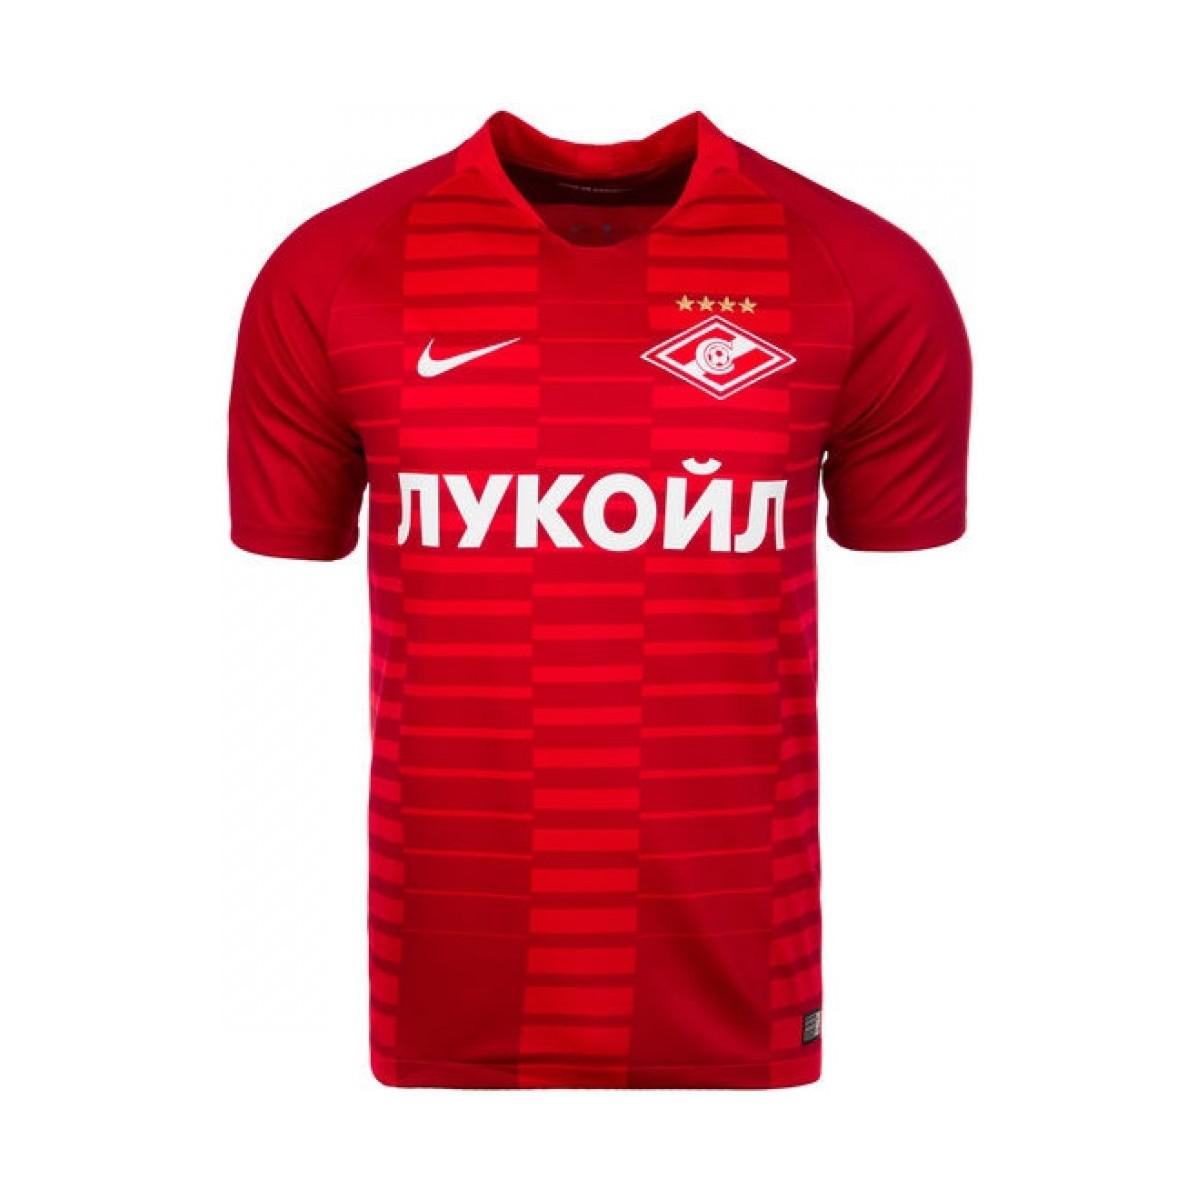 Nike 2018-2019 Spartak Moscow Home Football Shirt Women s T Shirt In ... 4176597f6